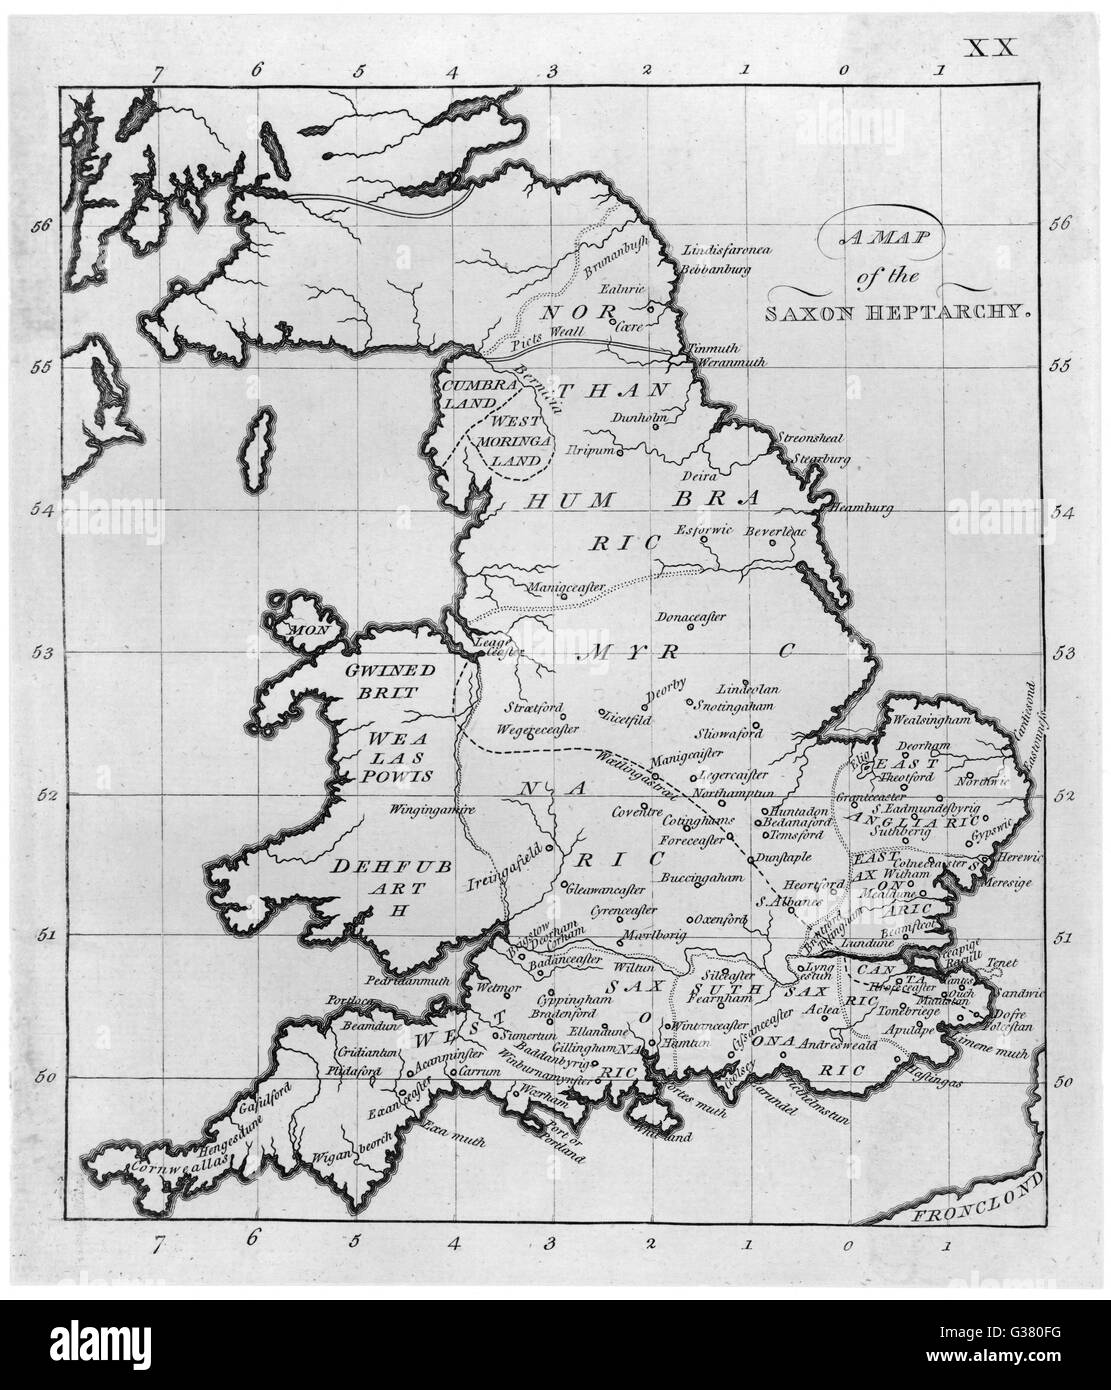 Map Of England 6th Century.Map Of England Stock Photos Map Of England Stock Images Alamy